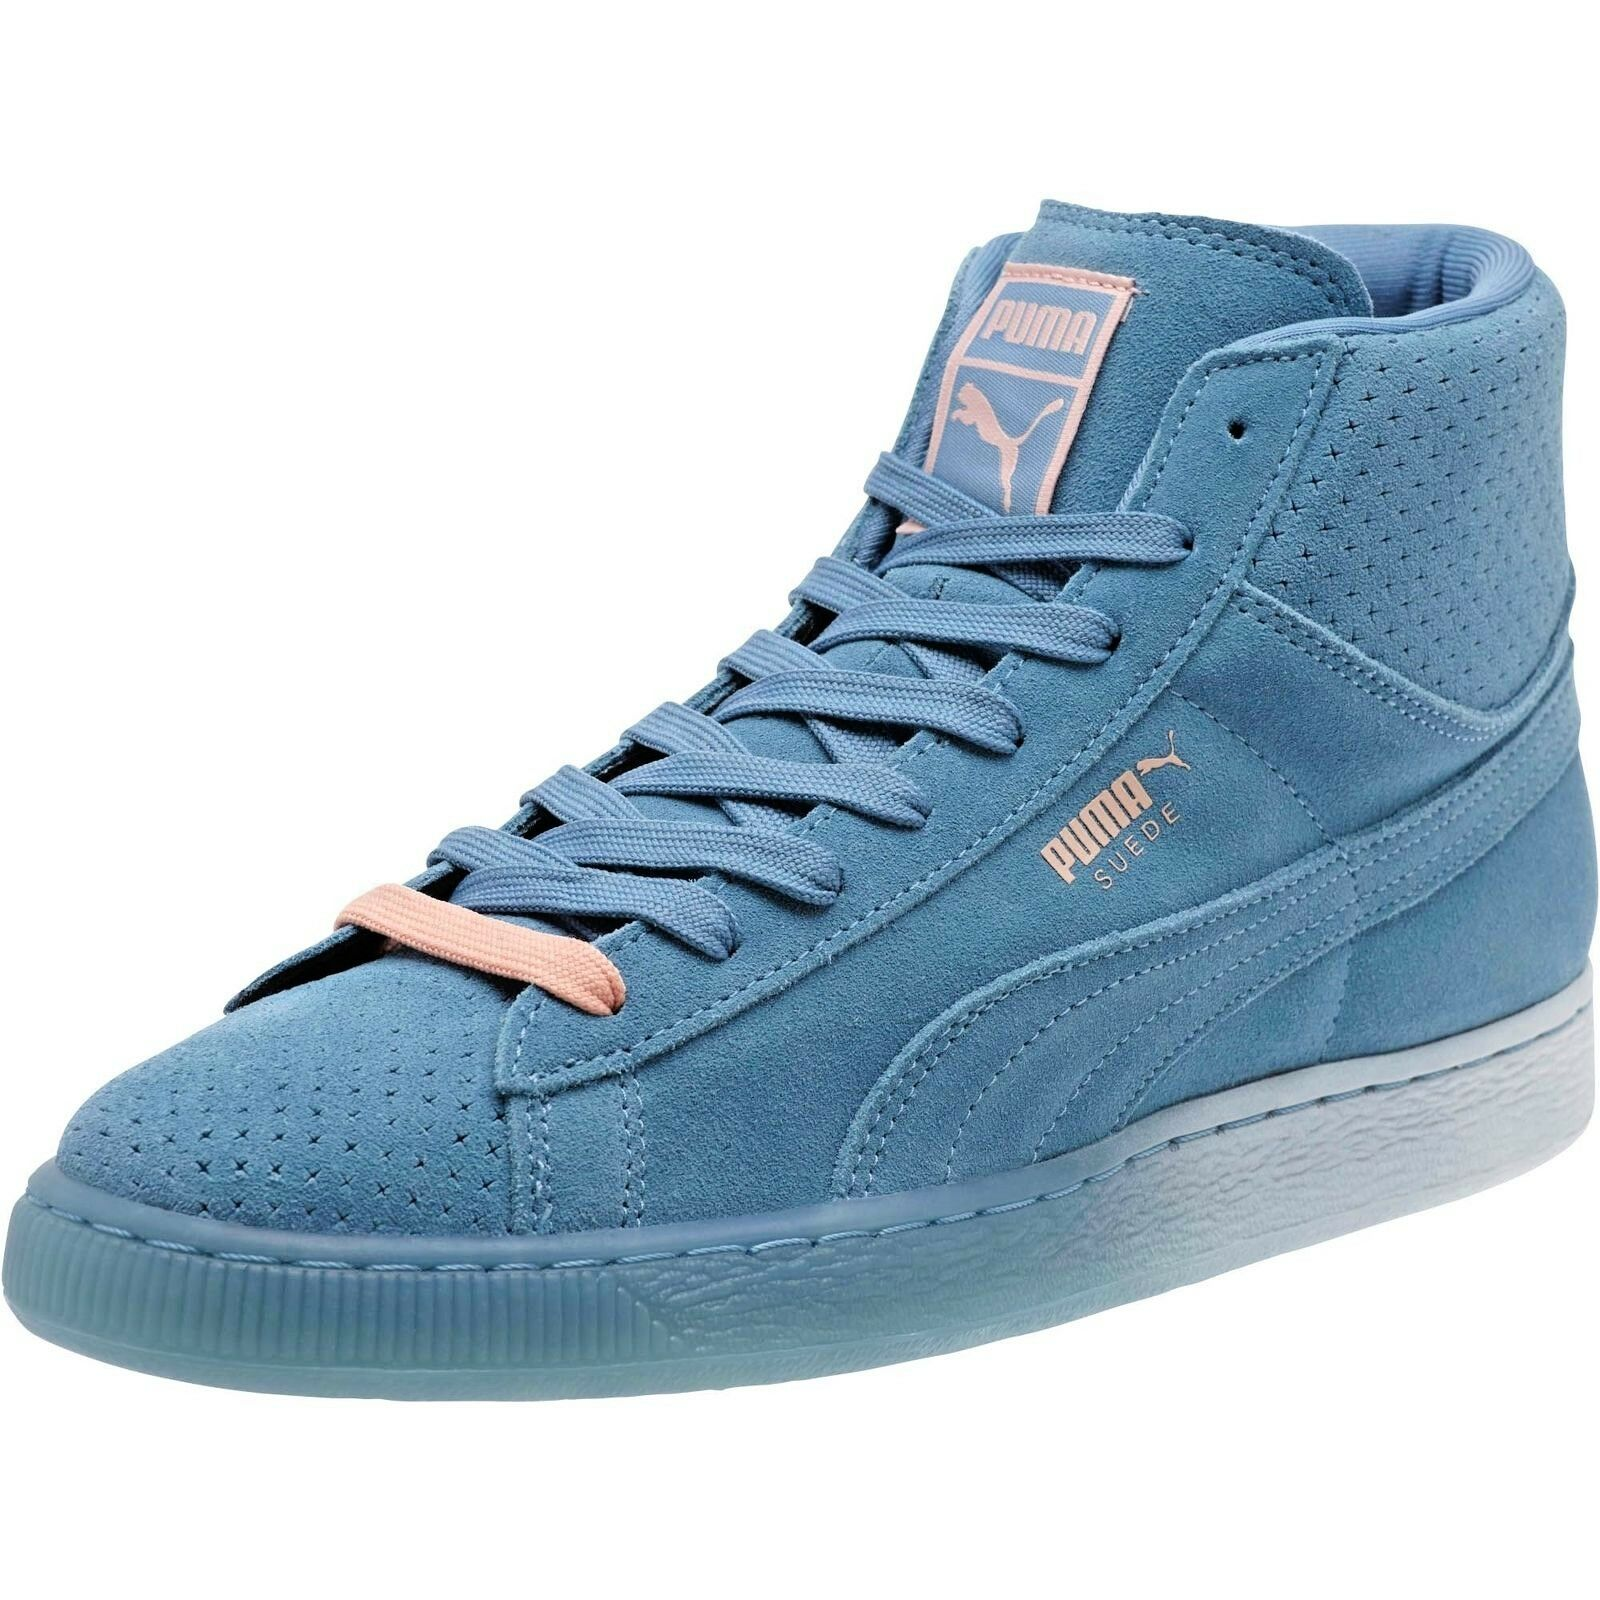 PUMA SUEDE X PINK DOLPHIN COLLAB MID TOP 362334 01 SZ 11.5